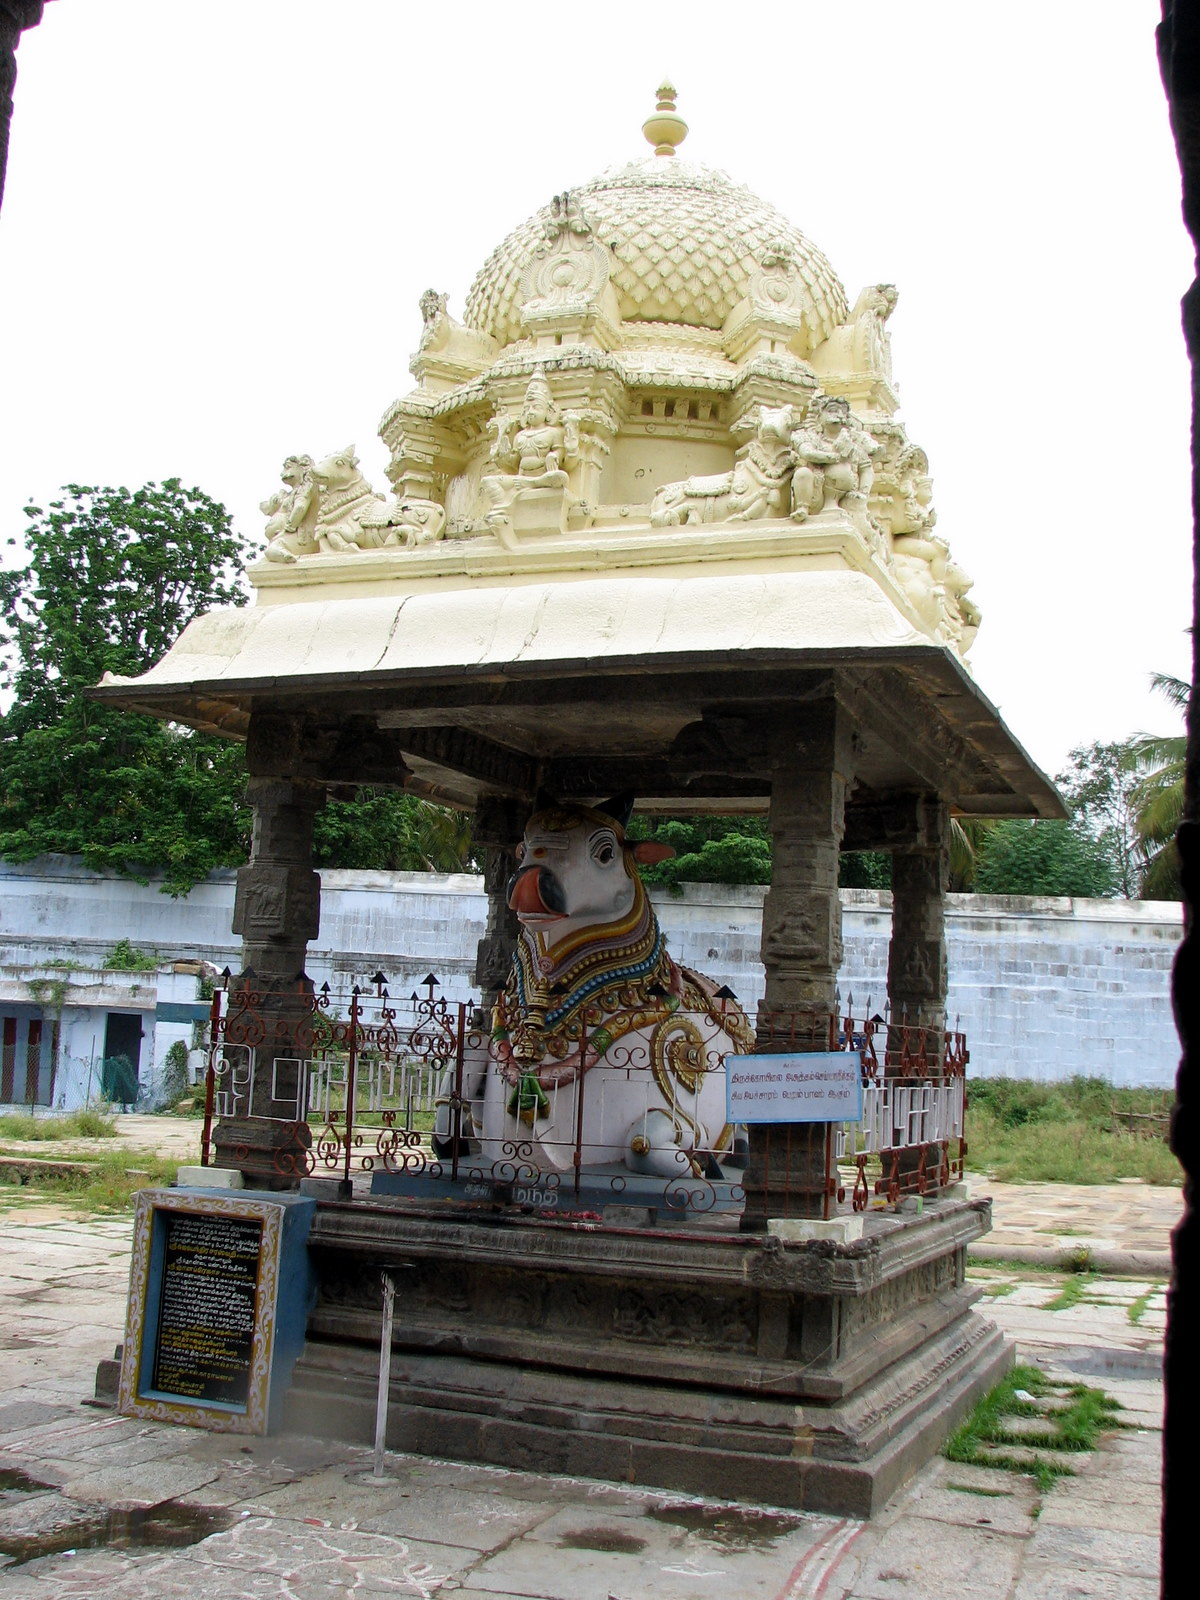 Sri Nilathingal Thundathan Temple (Nilathingal Thundam) Kanchipuram - Divya Desam 56